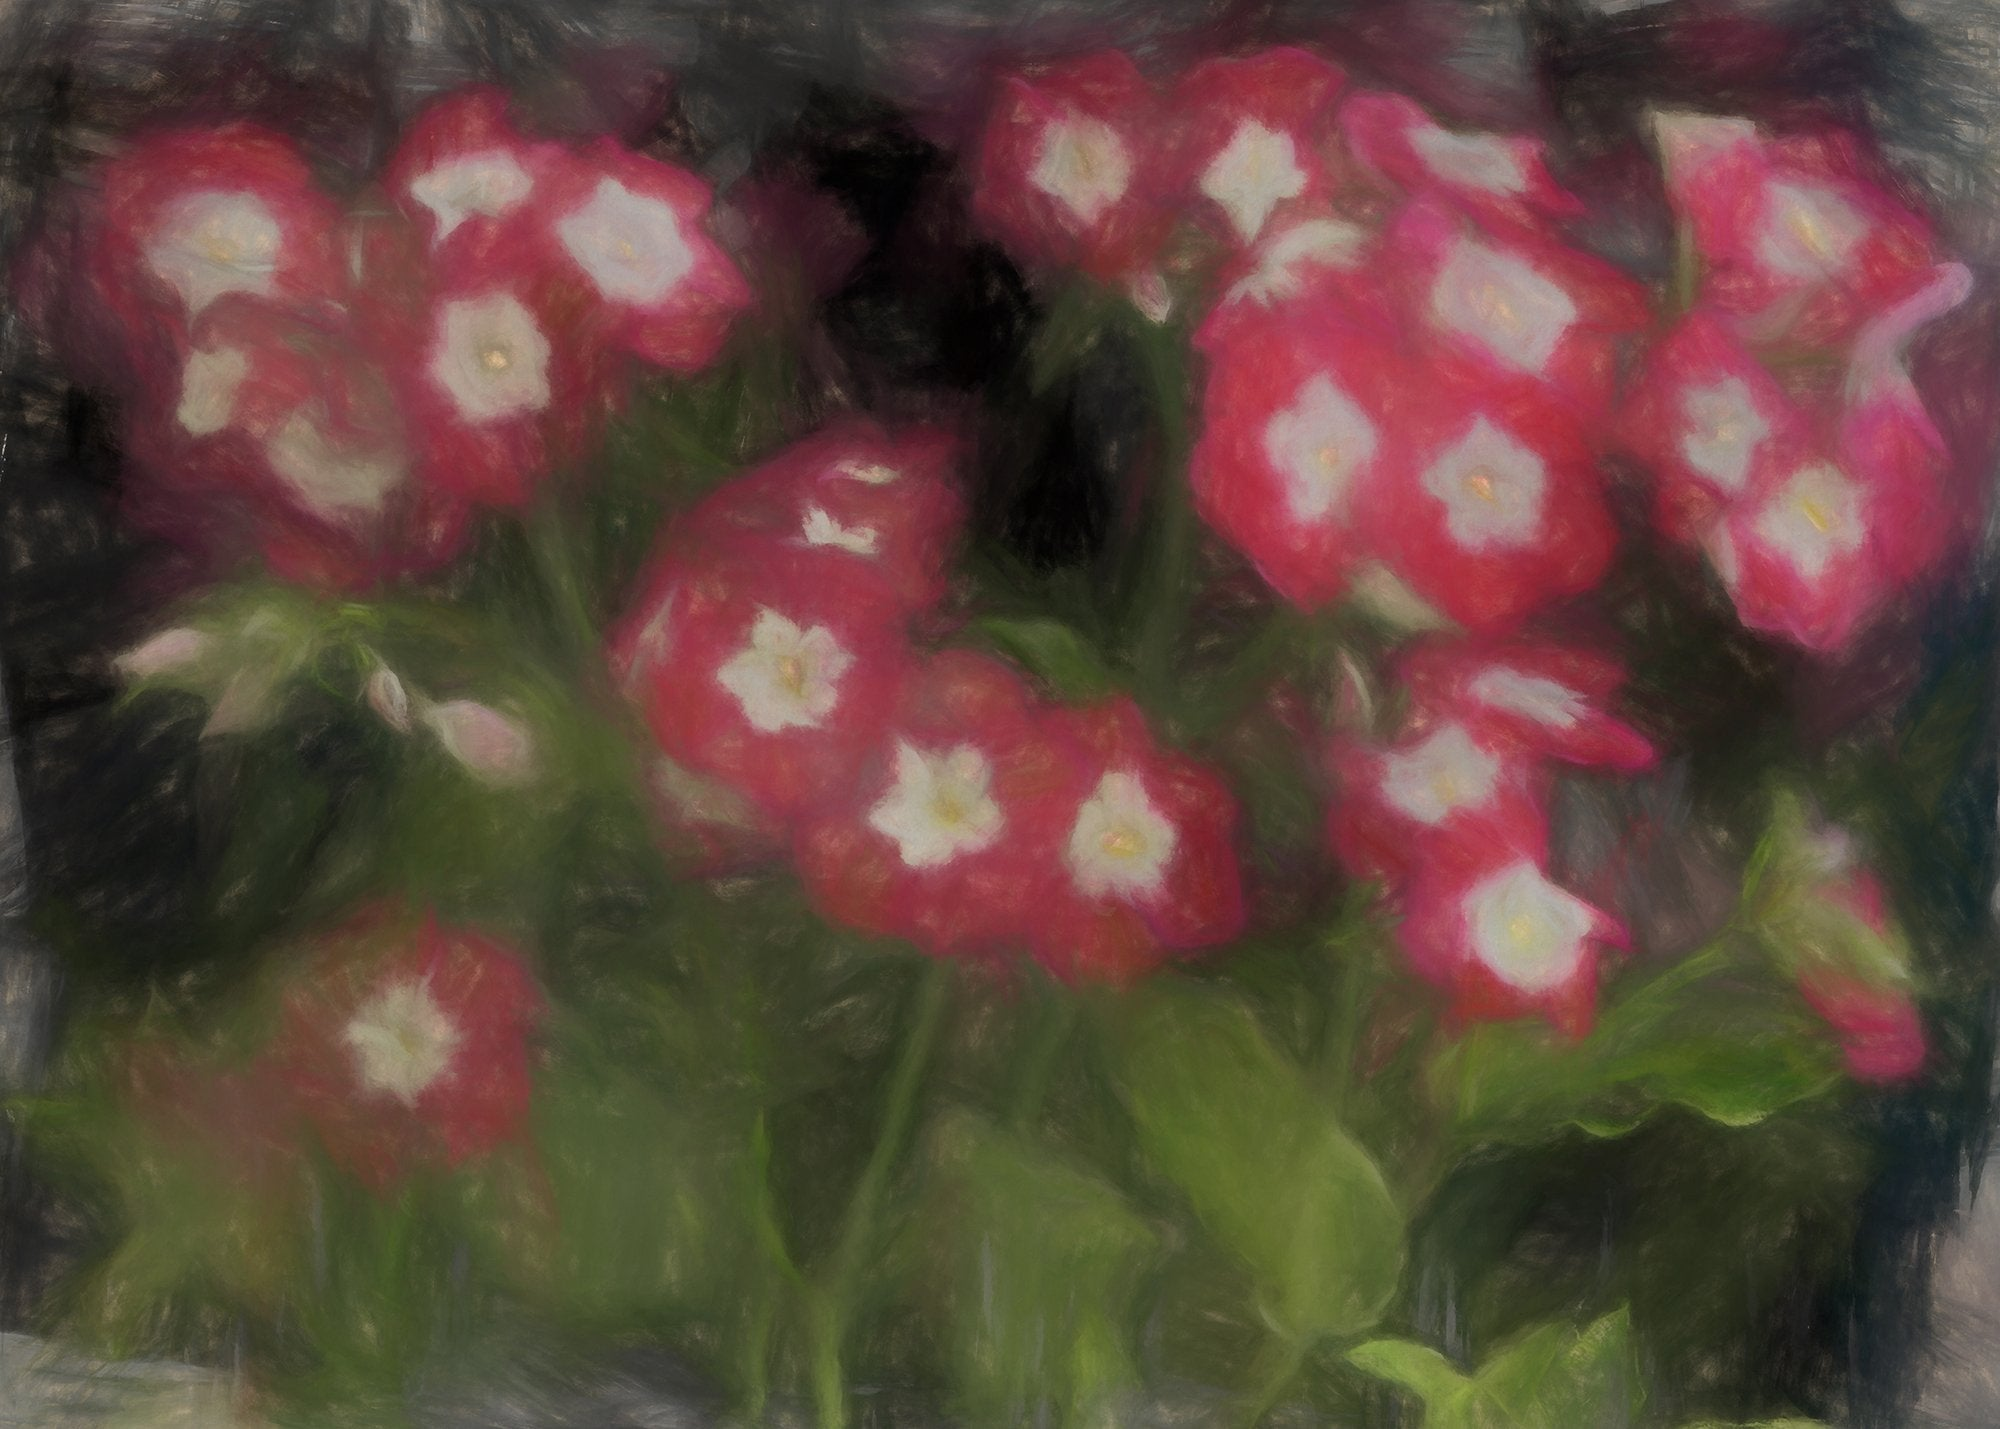 Phlox Drummondii, Reworked, Series 2